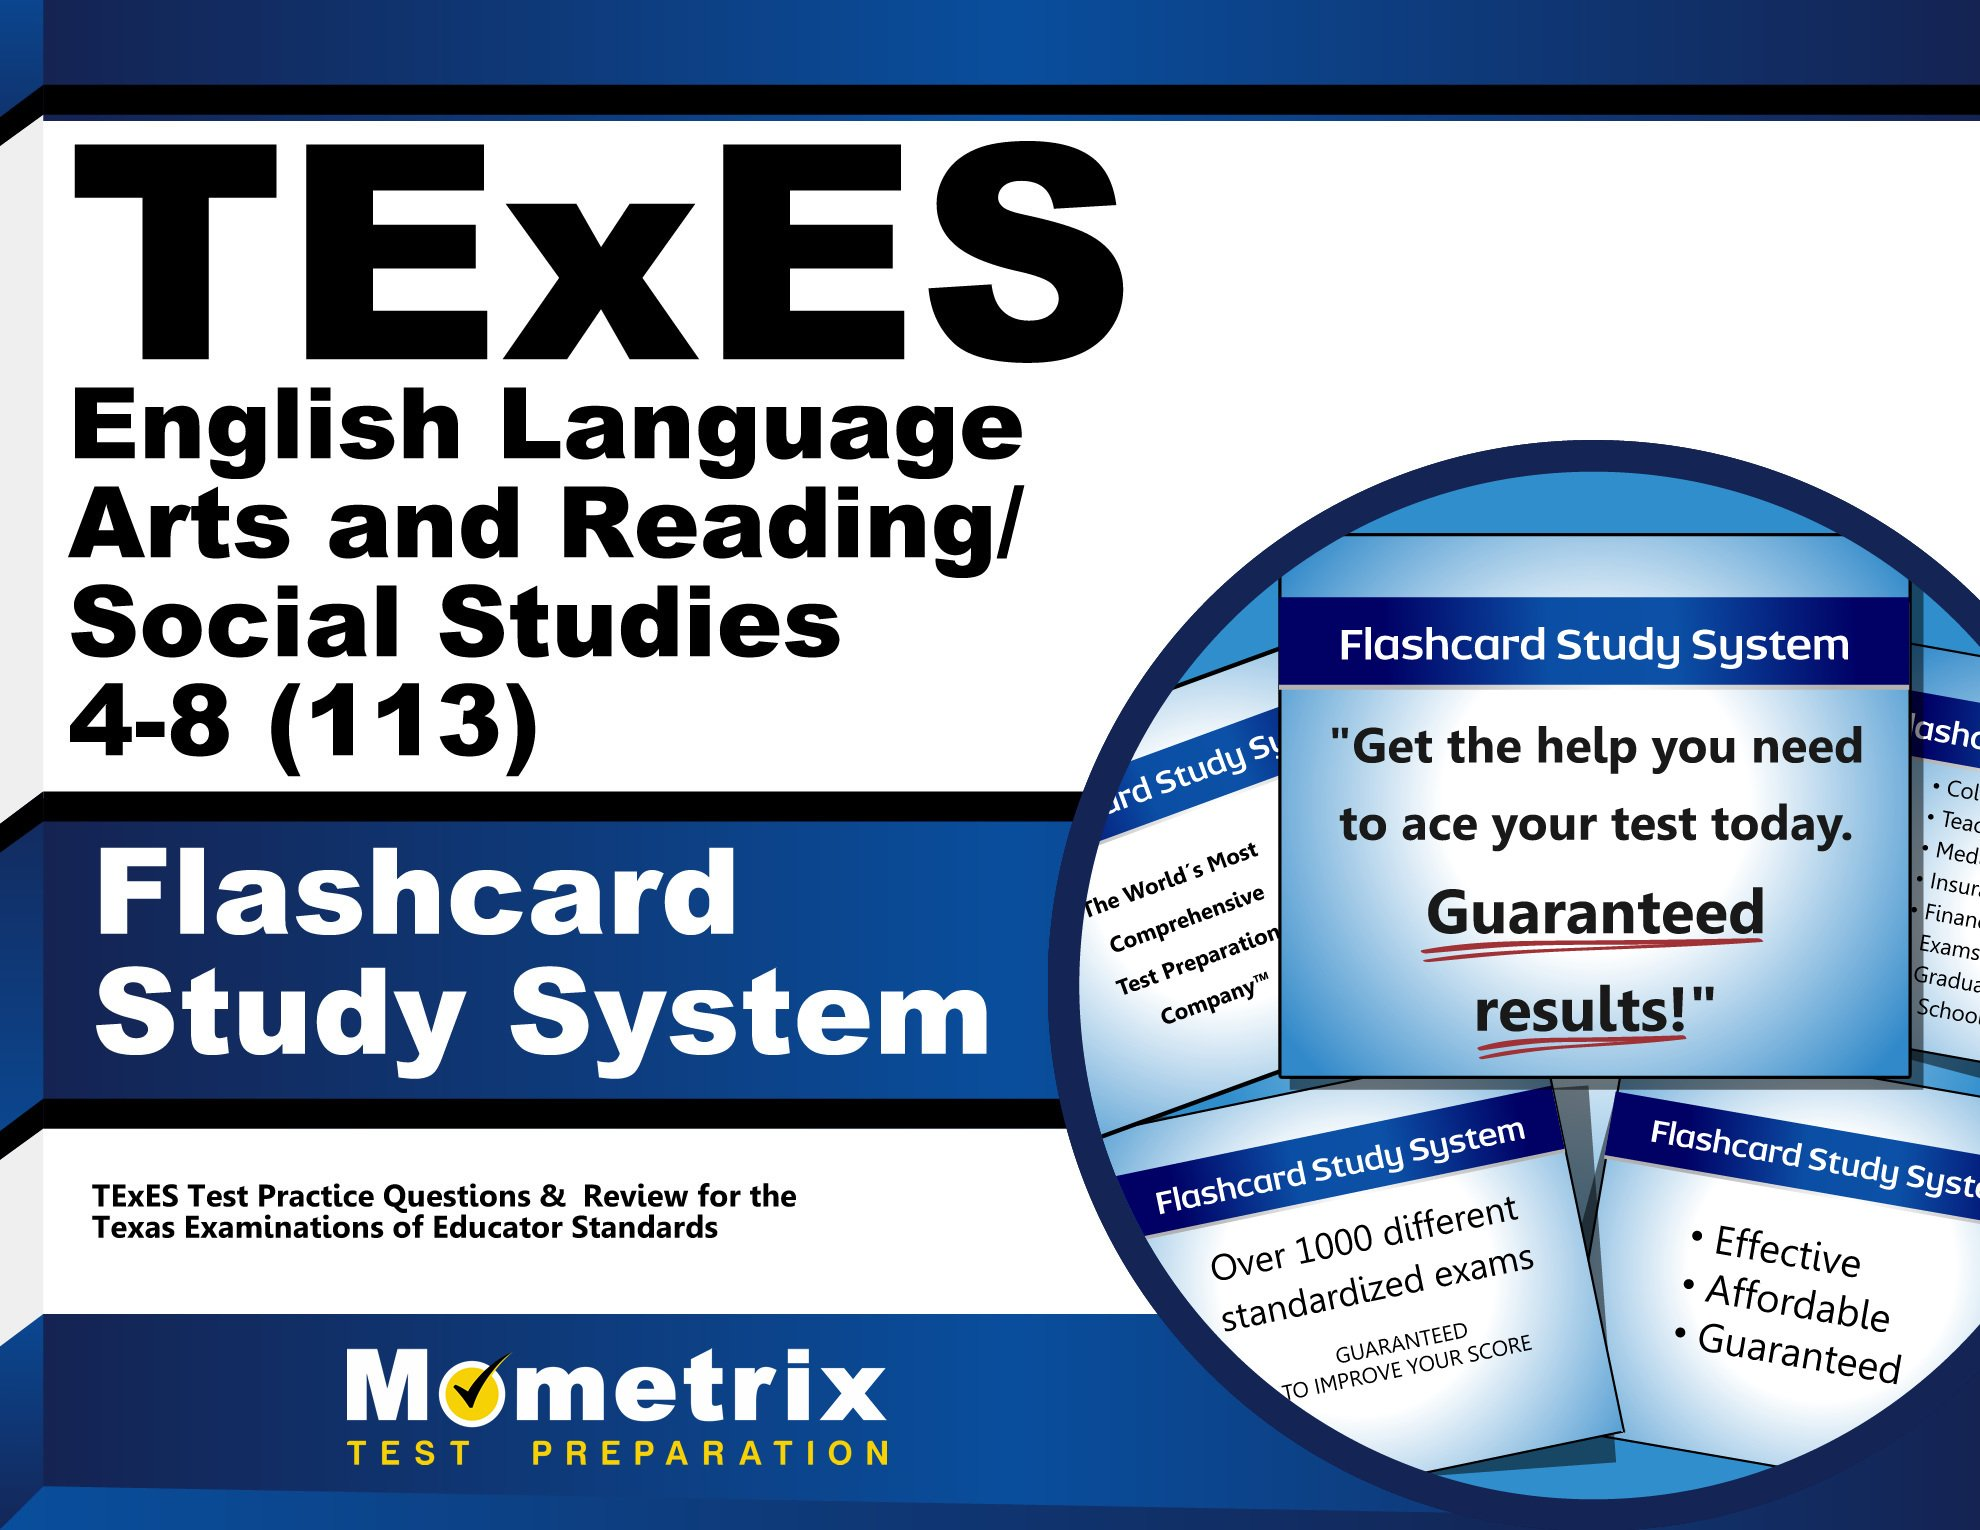 TExES English Language Arts and Reading/Social Studies 4-8 (113) Flashcard Study System: TExES Test Practice Questions & Review for the Texas Examinations of Educator Standards (Cards)